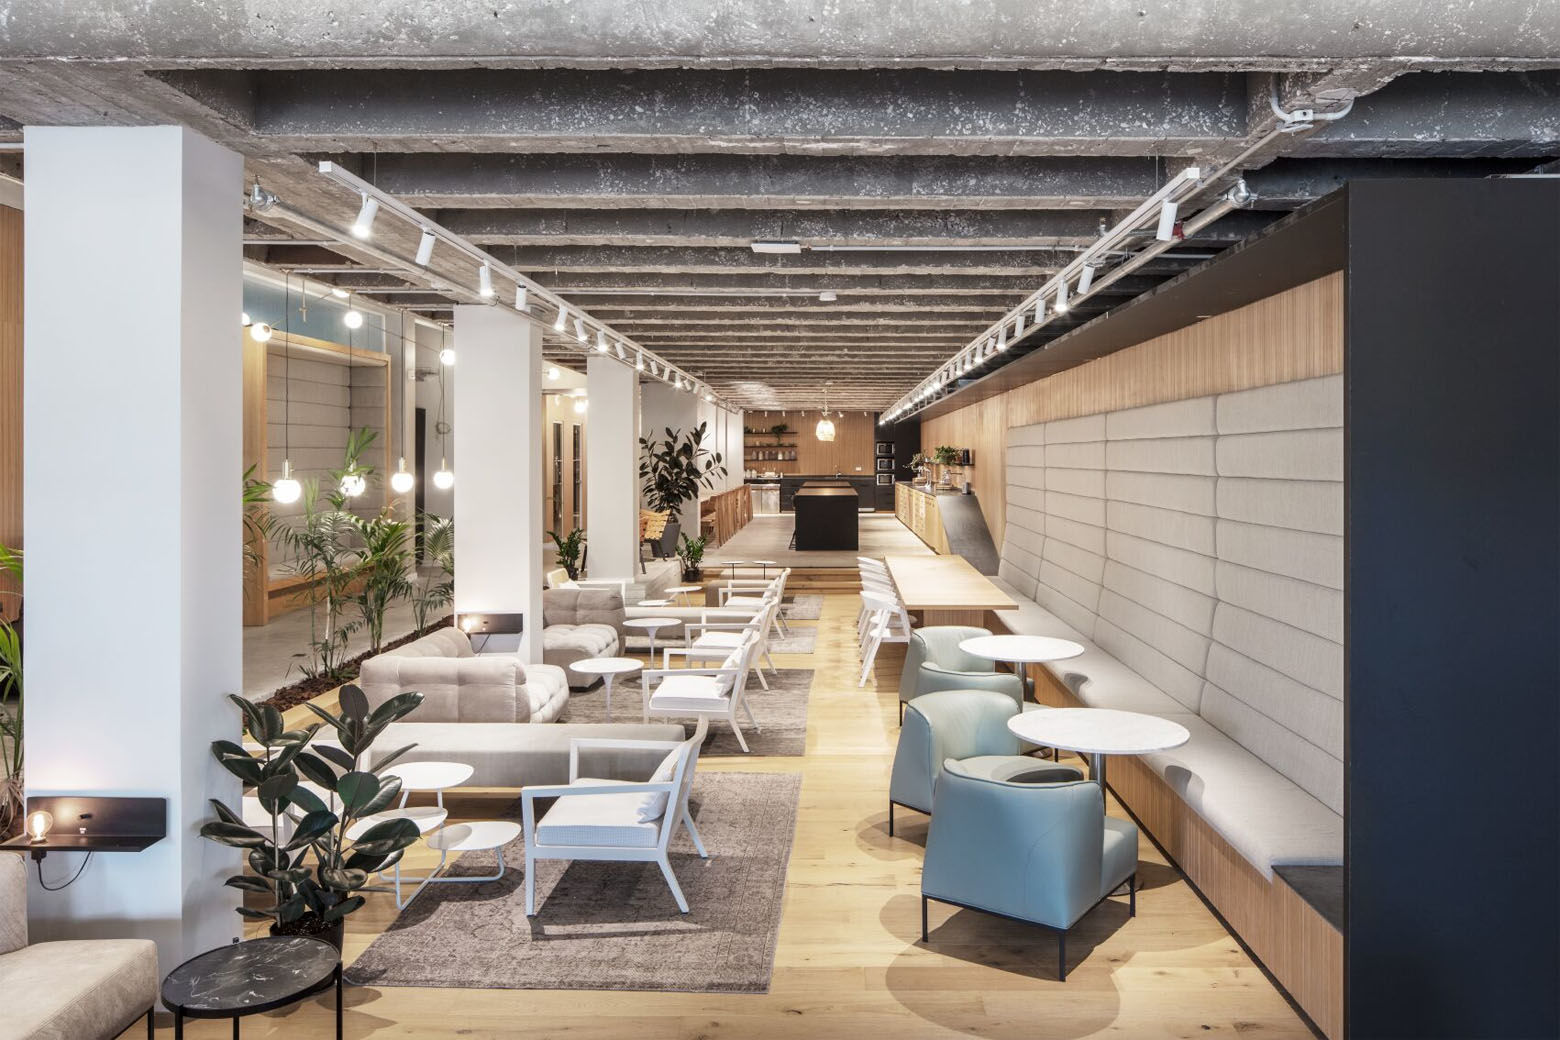 """A look inside MIXER's Tel Aviv space. The company says its coworking spaces are on par """"with a 5-star hotel experience."""""""